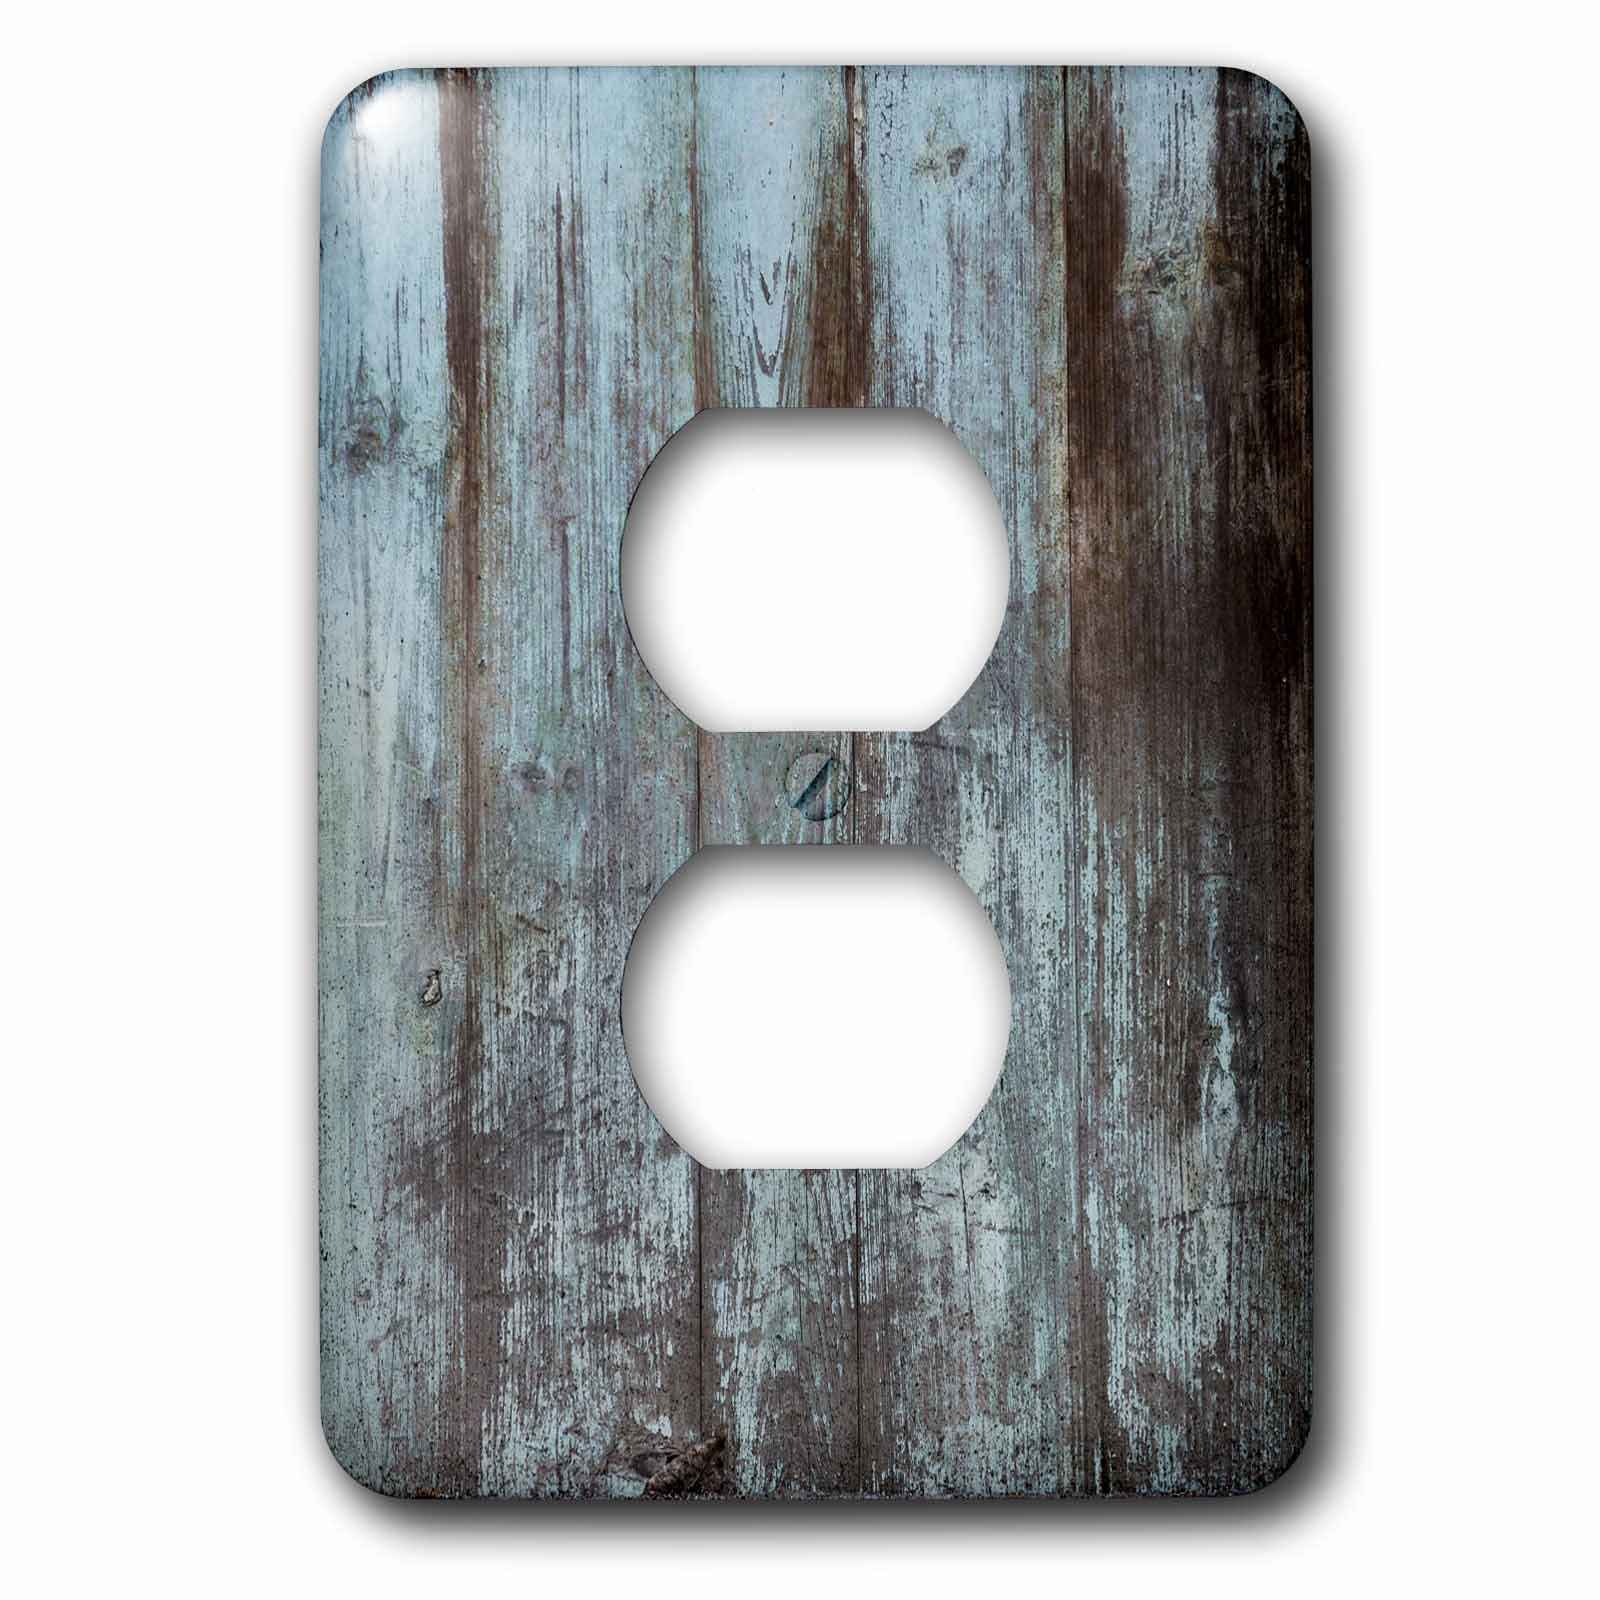 3dRose lsp_239937_6 Blue Distressed Country Wood Effect Plug Outlet Cover